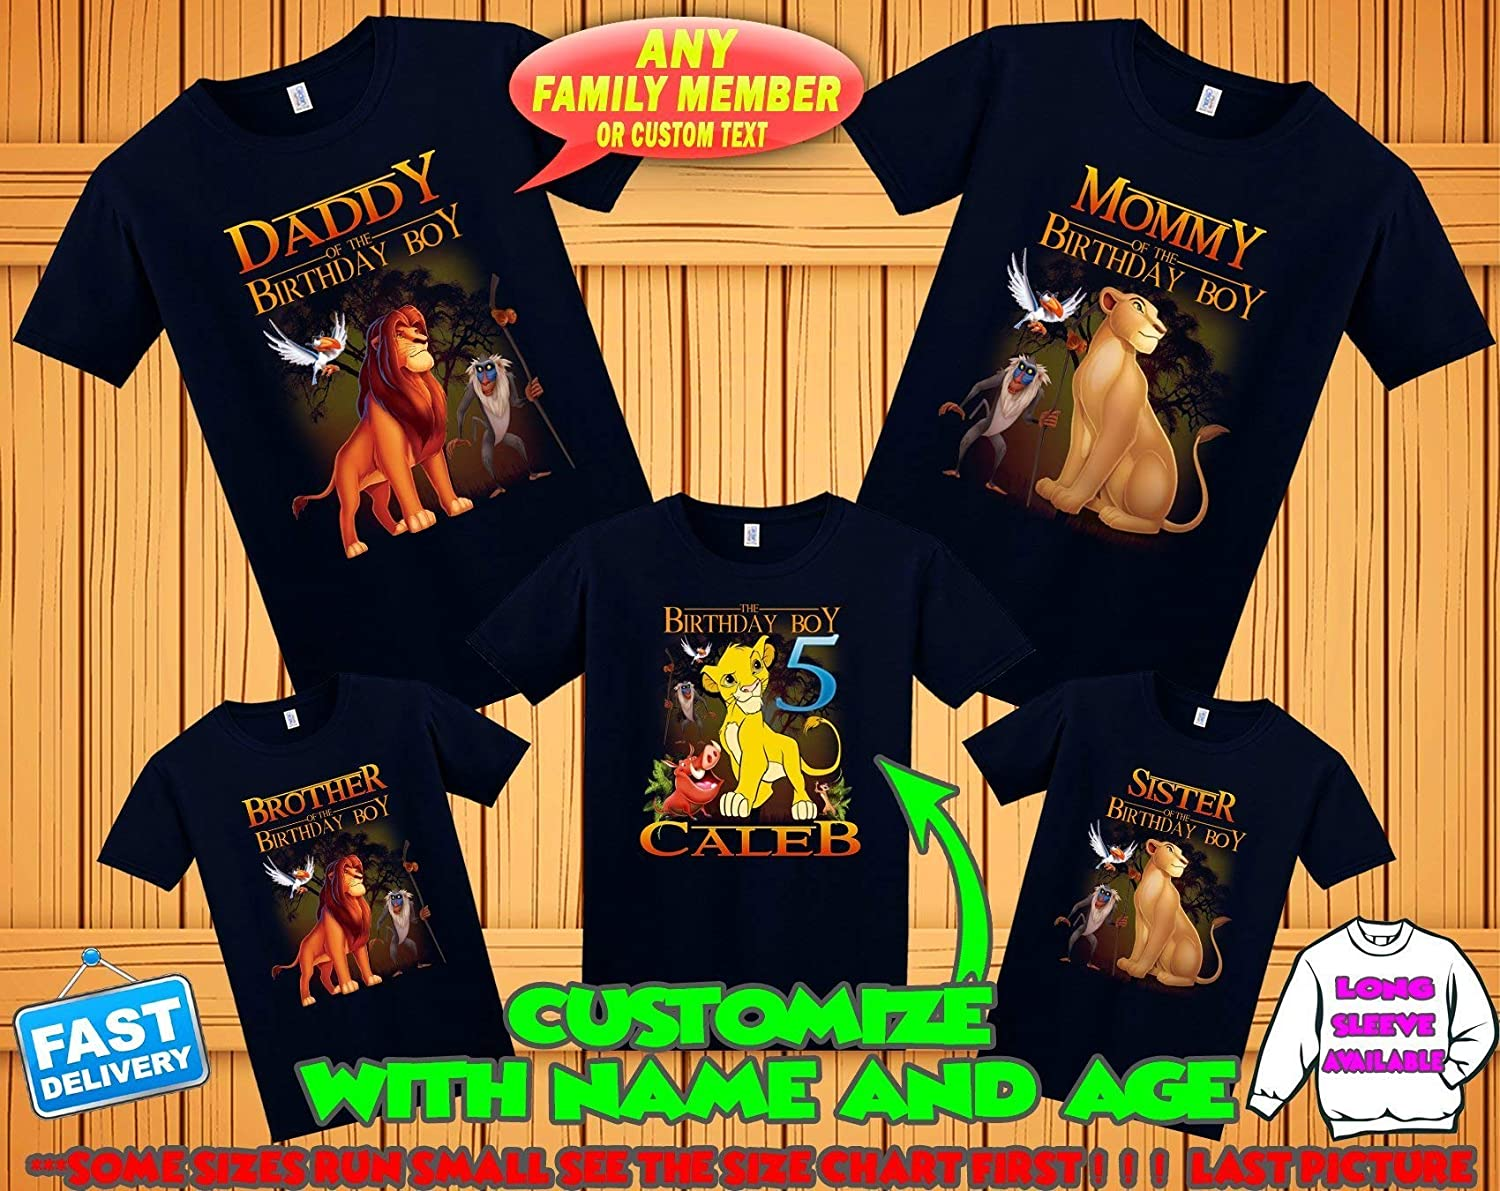 Customized Birthday Shirts For Adults